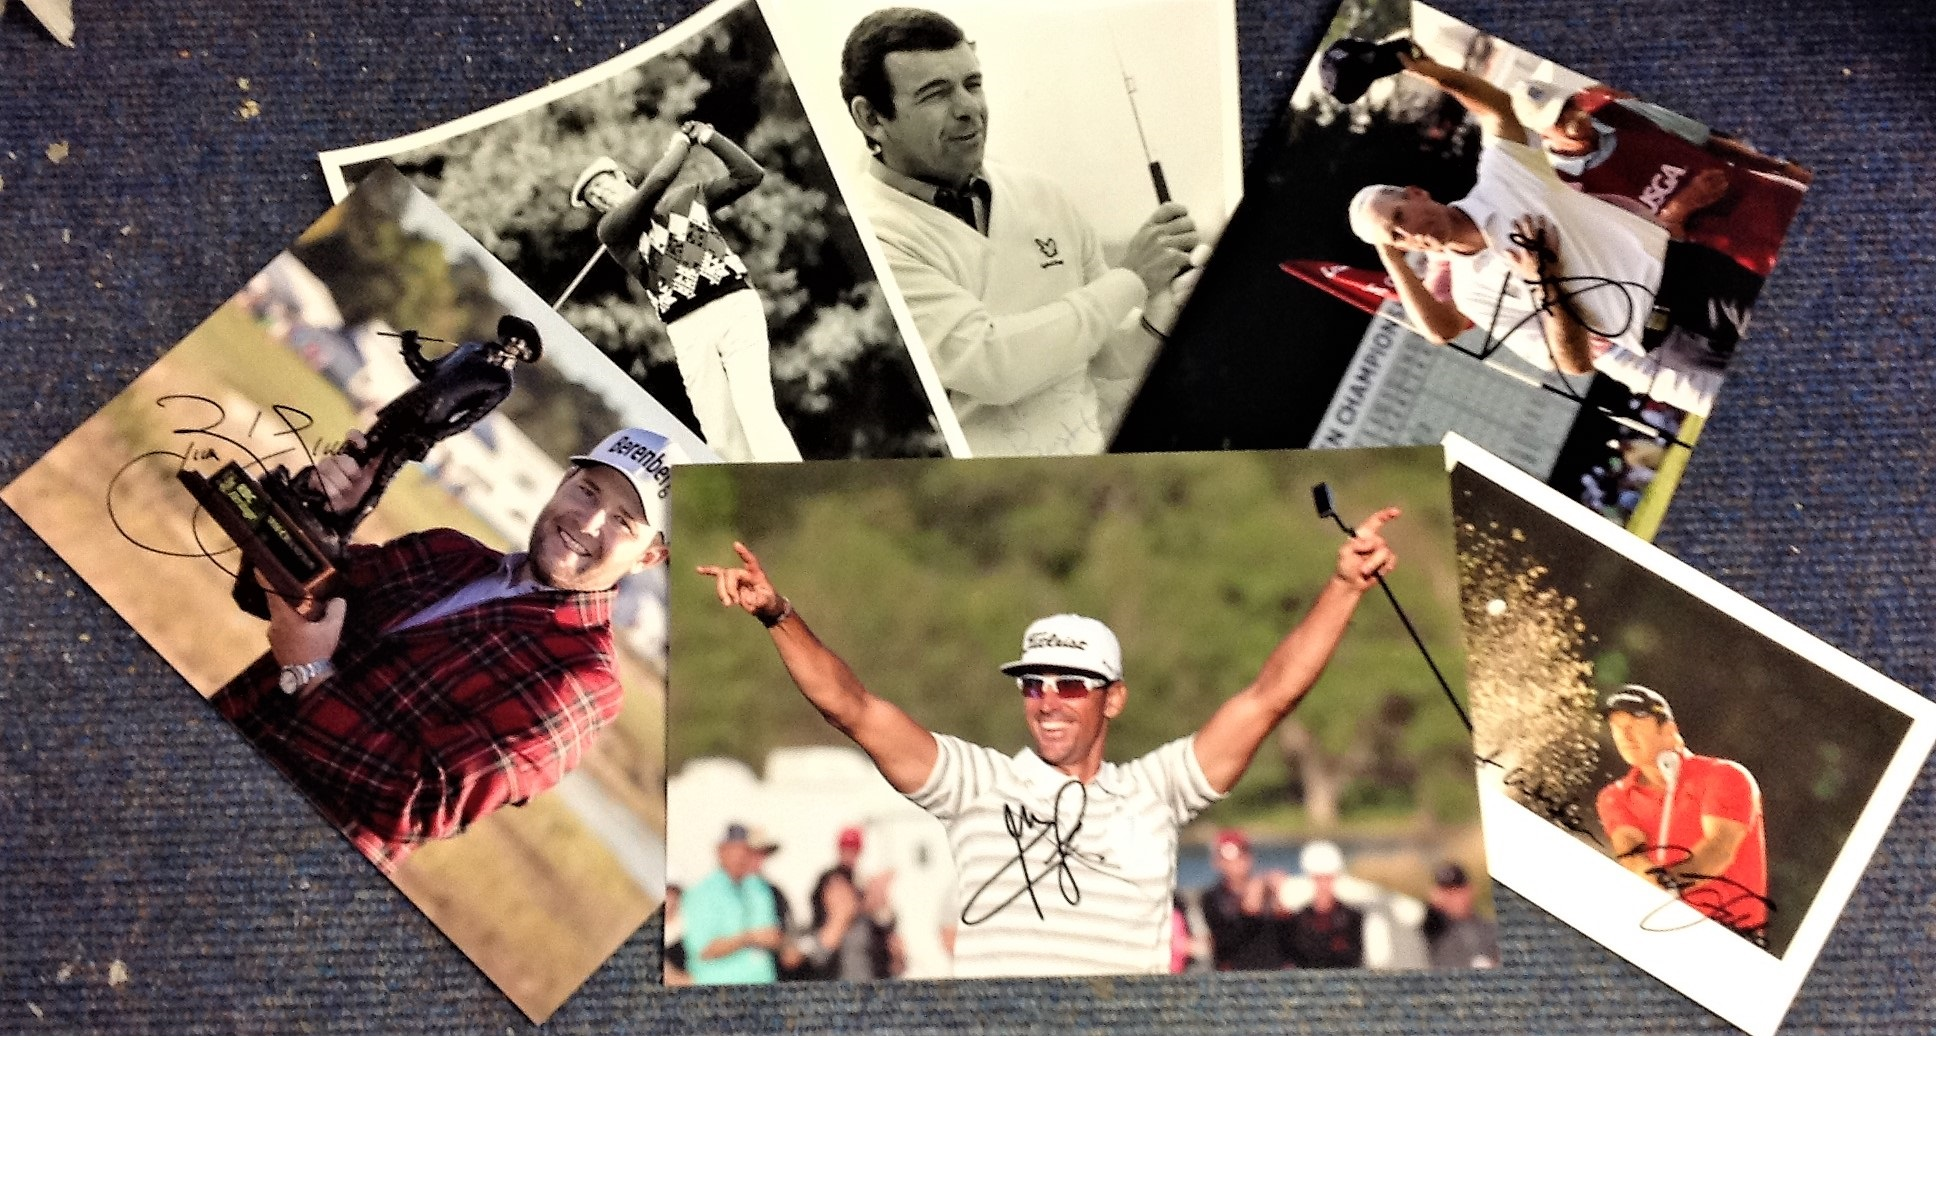 Lot 23 - Golf collection 6 colour and b/w photos from some well-known players from Europe and the USA